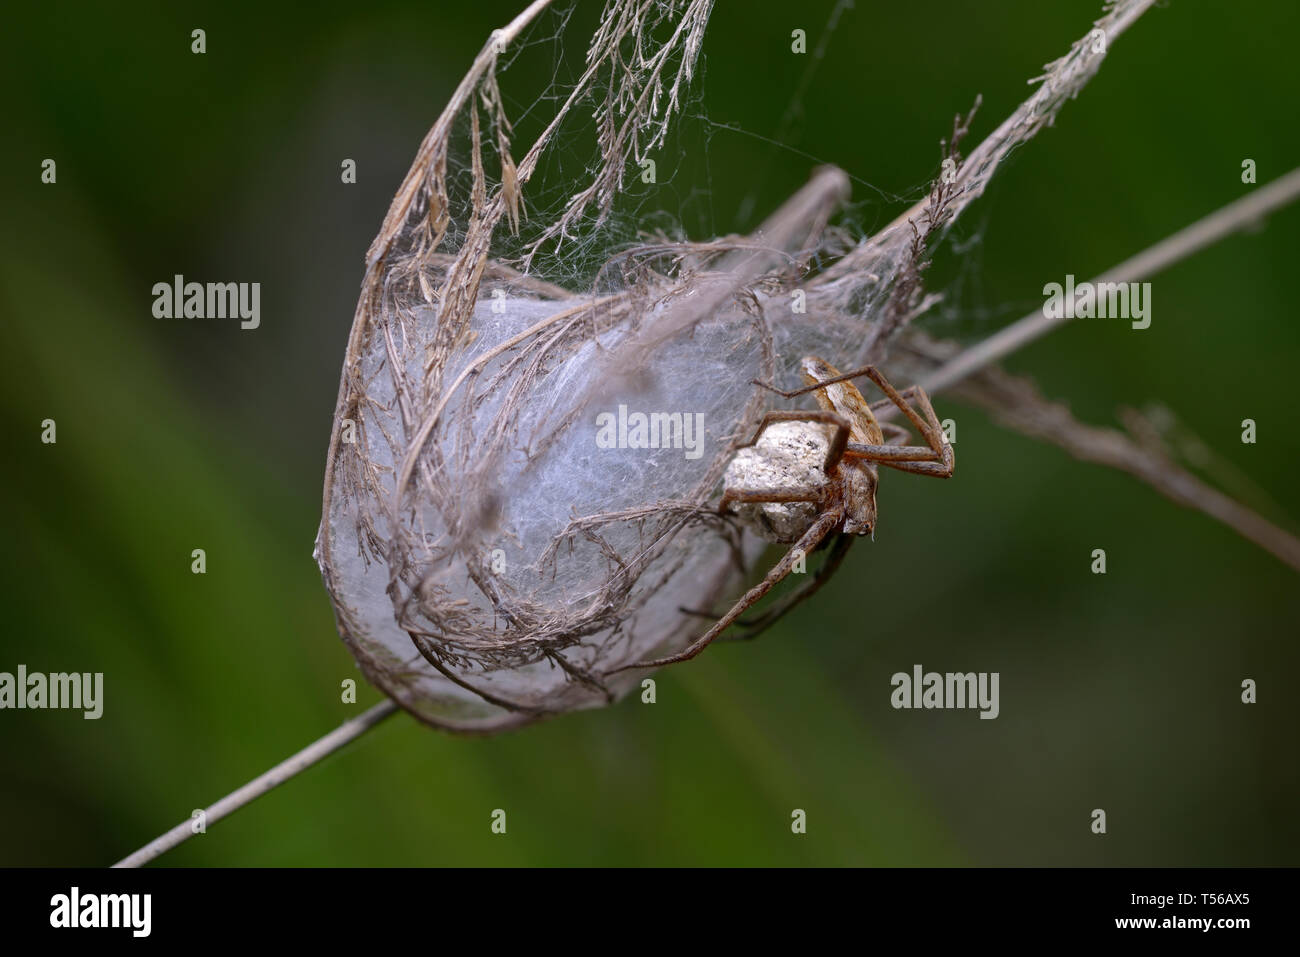 Wolf spider guarding its nest, holding a cocoon in paws - Stock Image